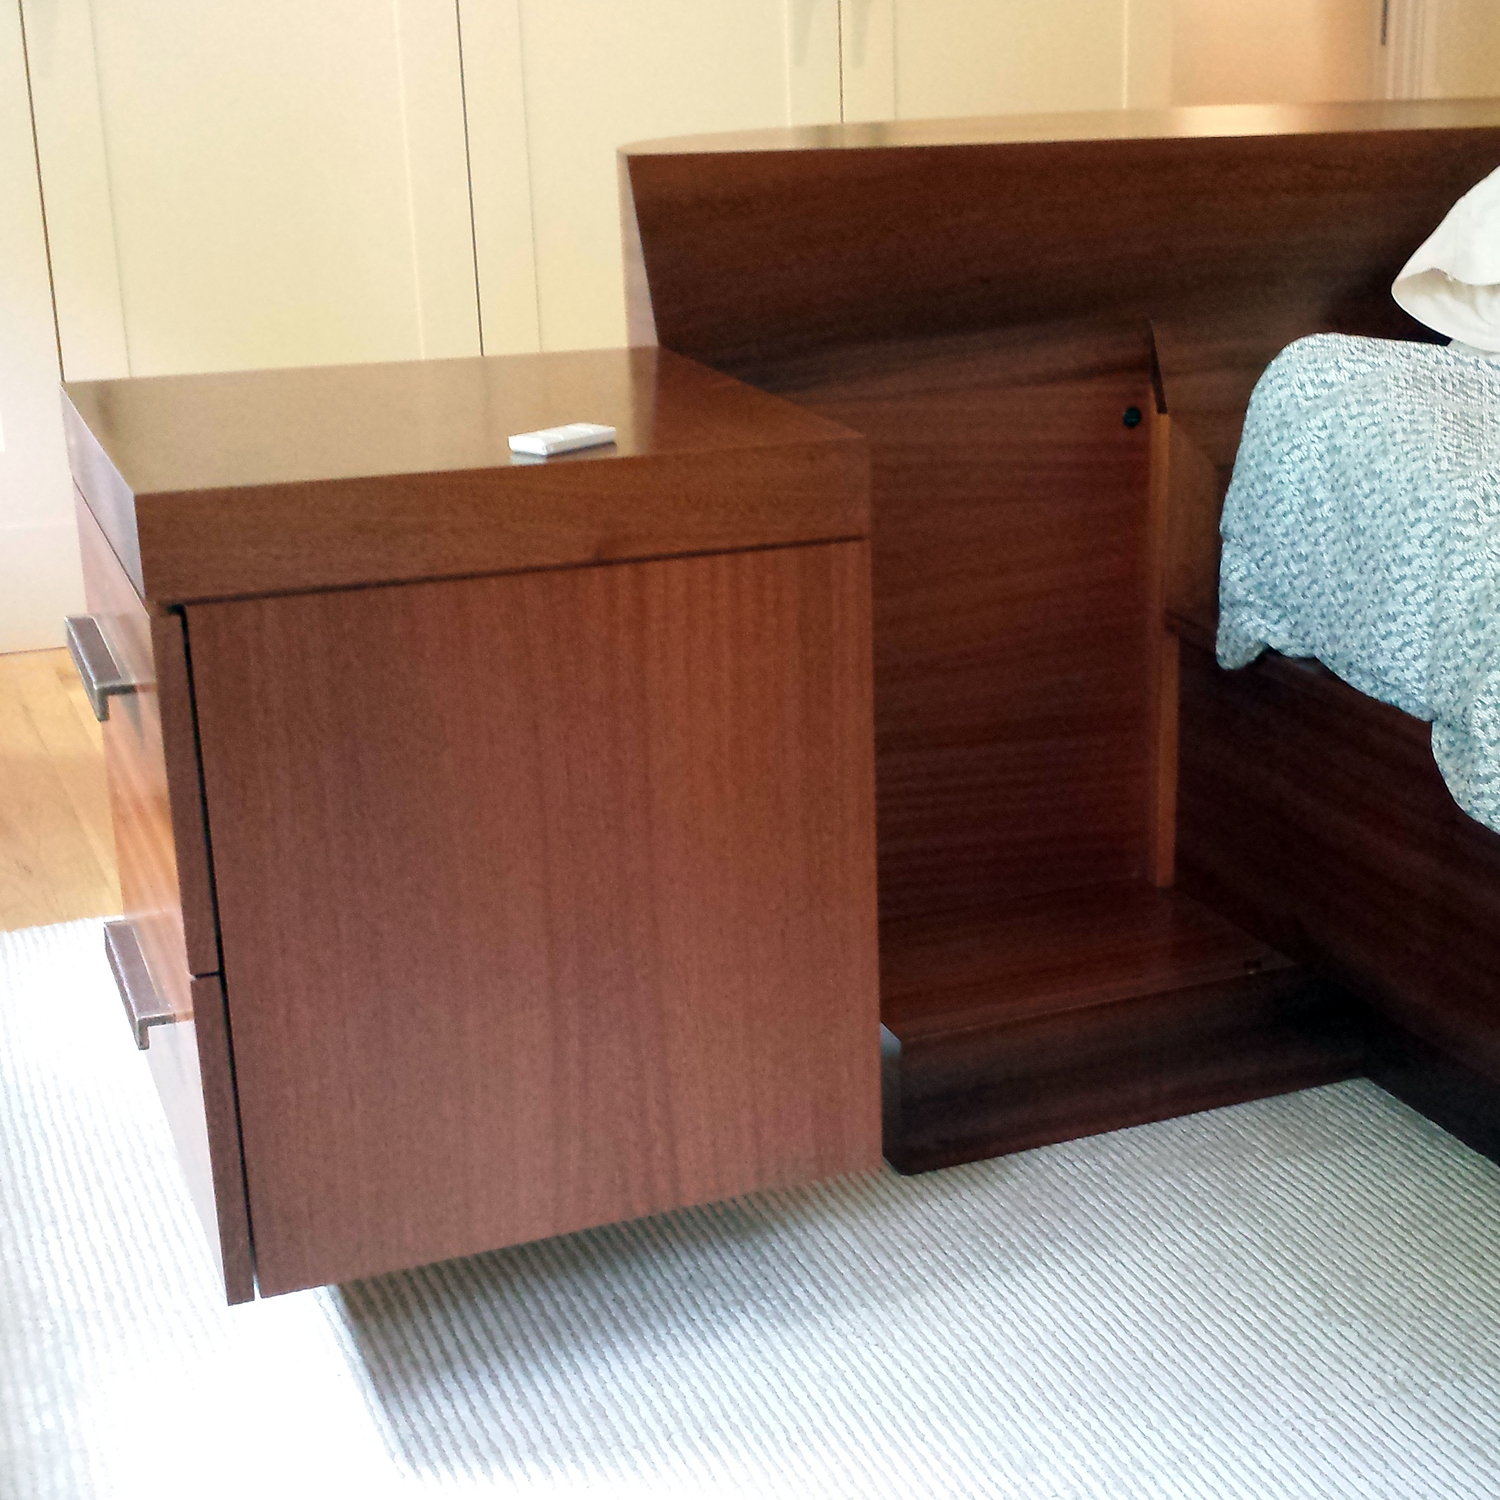 island_bed_hinged_sidetable2.jpg